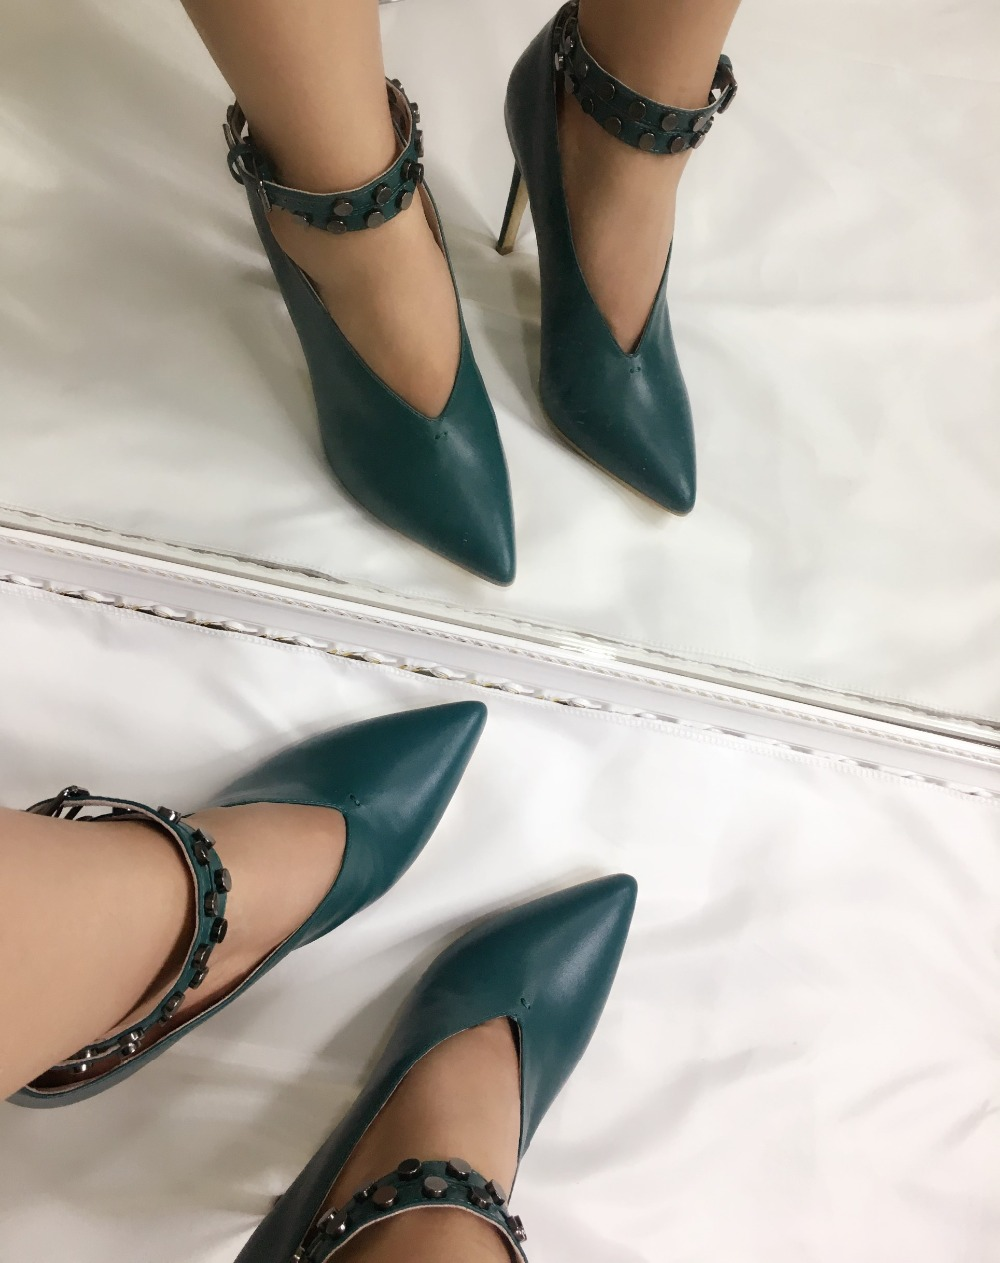 2018 Spring NEW Women Ankle Strap Buckle Pumps Studs Pointed Toe Shoes Party Sexy Real Leather High Heels Bottle Green Handmade de la chance spring fashion buckle 2018 women pointed toe high heels sexy ultra high heel party dress nude pumps shoes woman